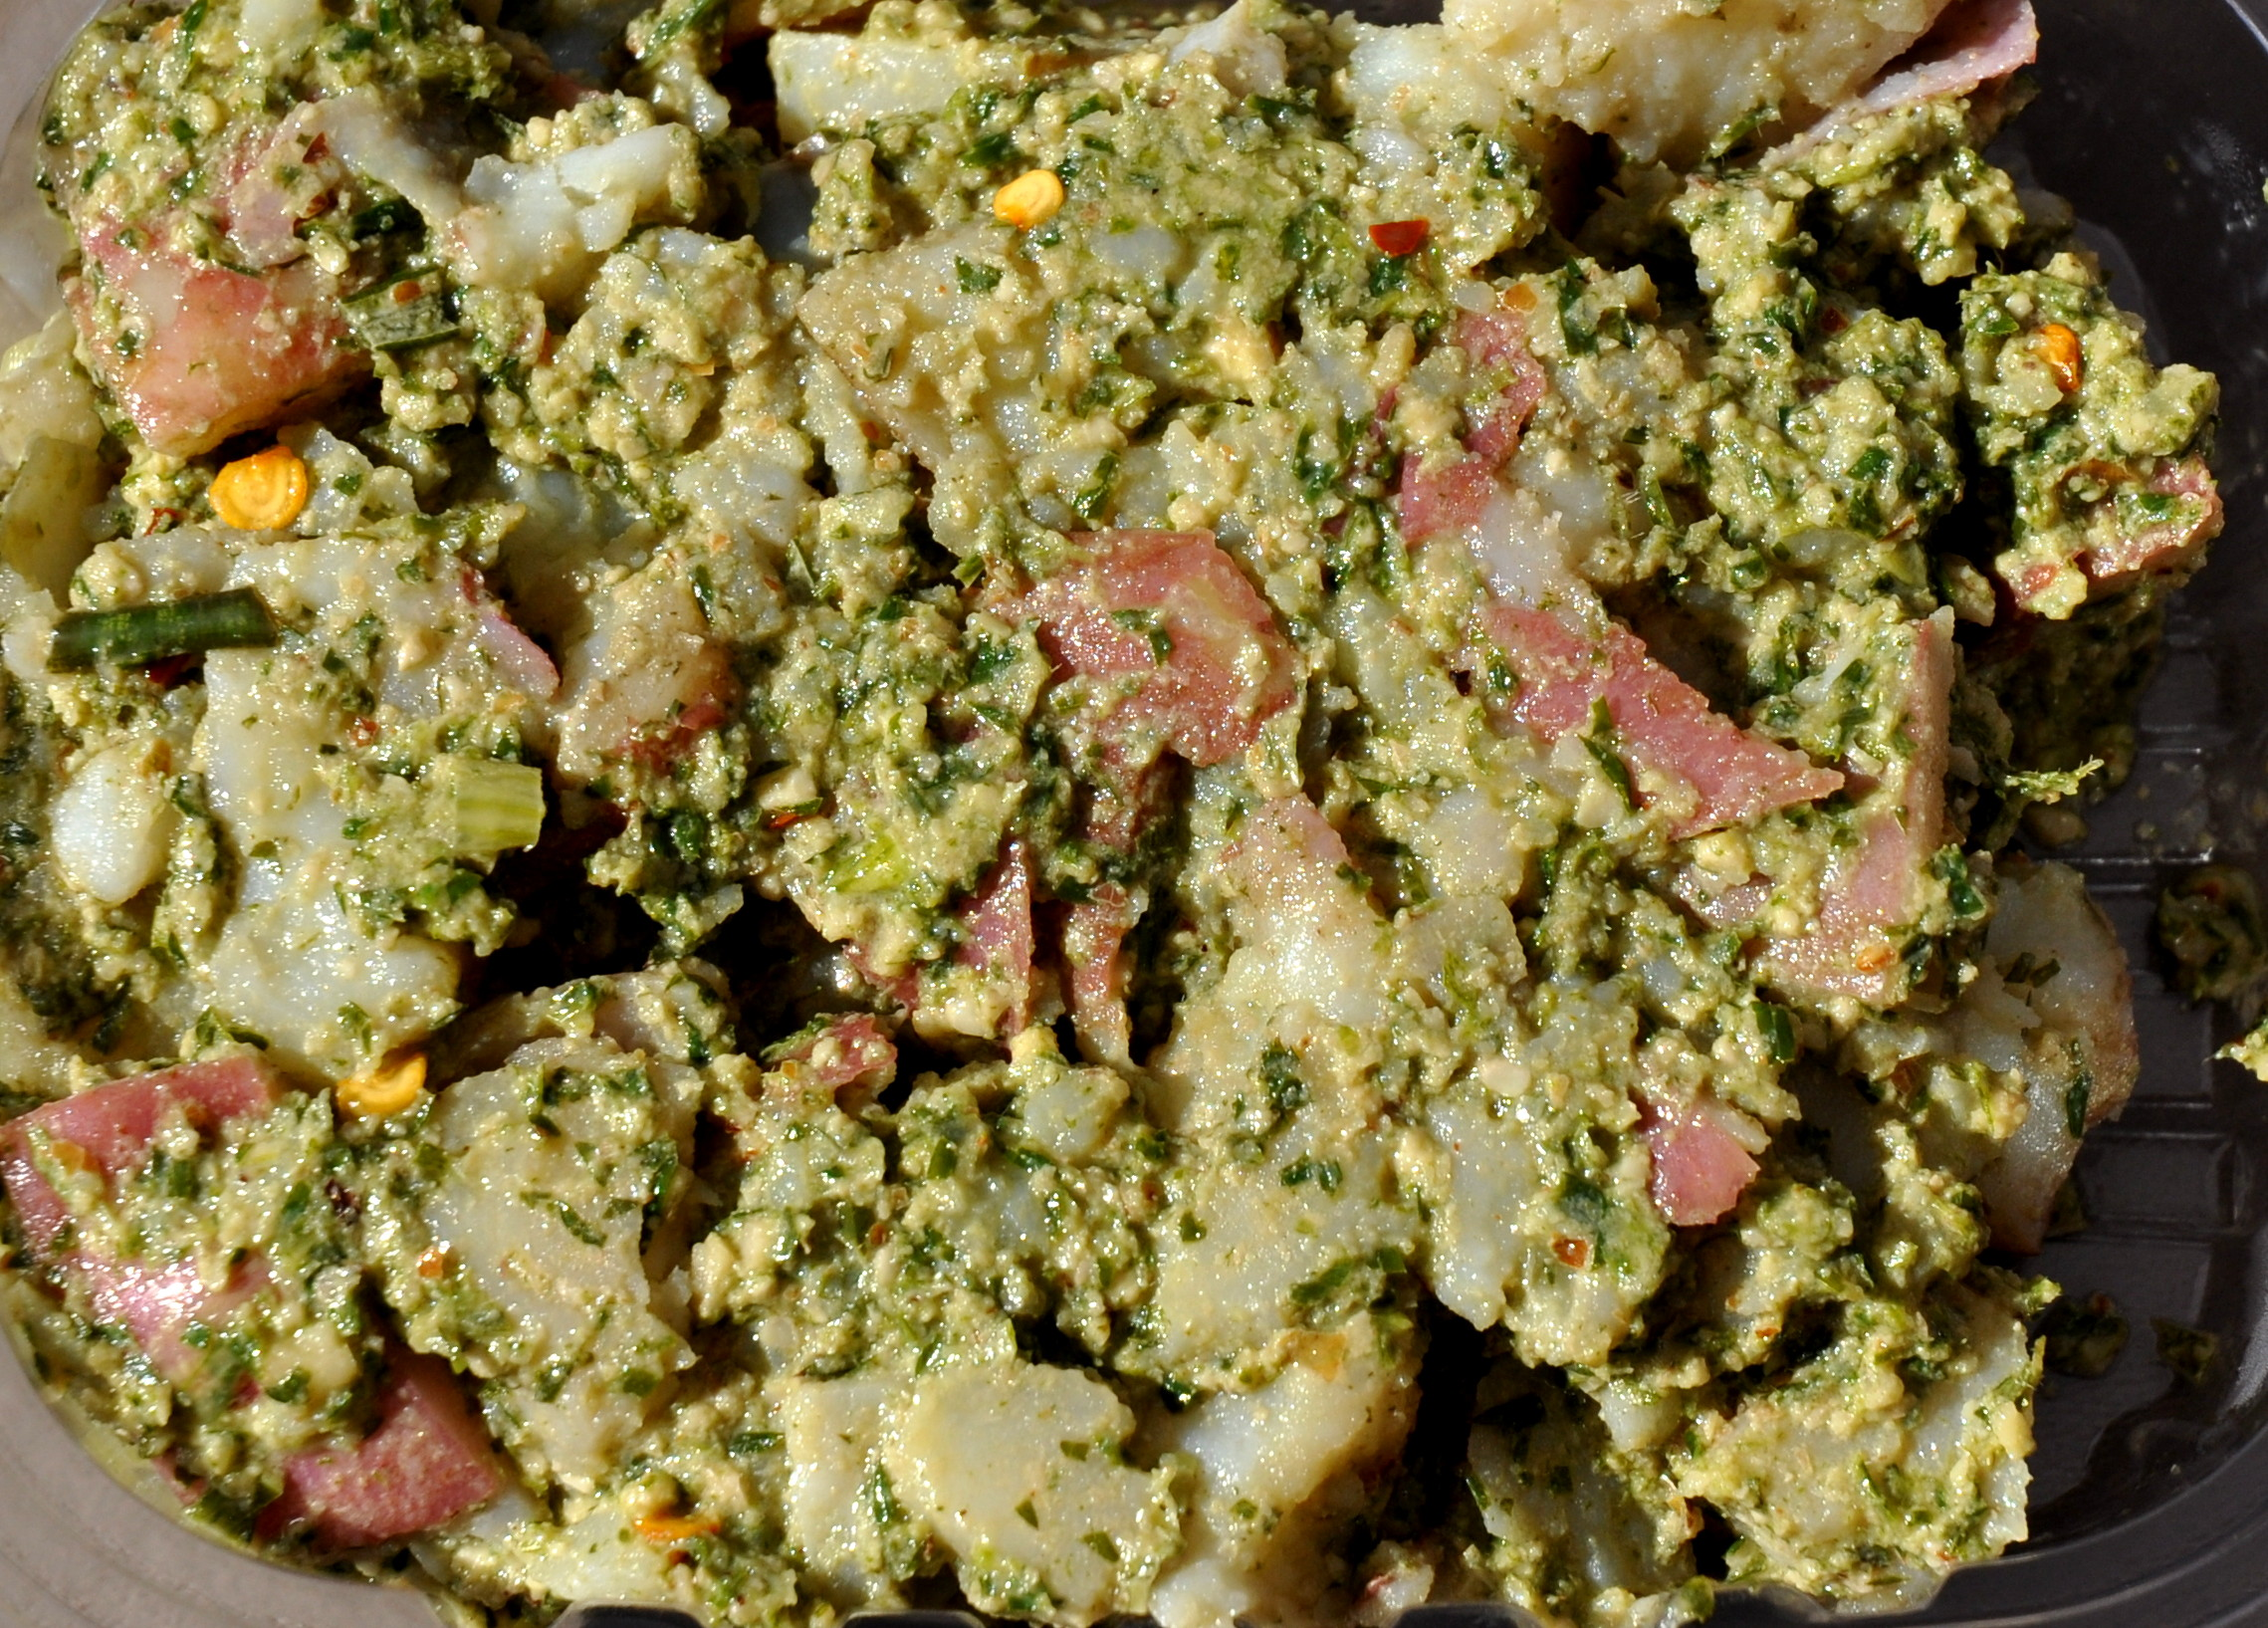 Carrots greens pesto potato salad from Knife For Hire Picnic Foods. Photo copyright 2013 by Zachary D. Lyons.